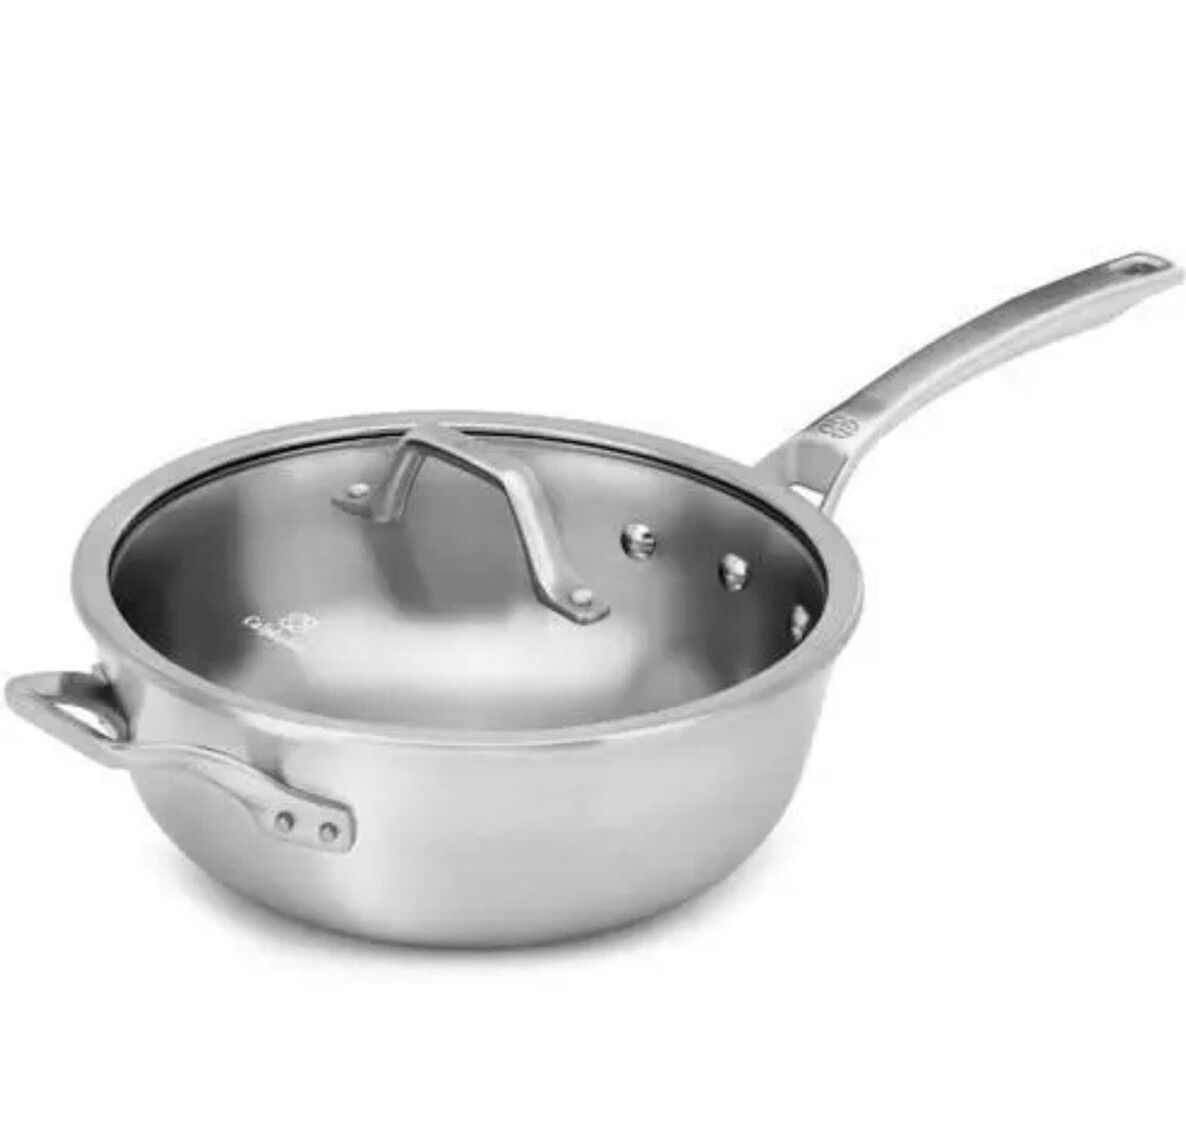 Calphalon Signature Stainless Steel 4 Qt. Chef Pan with Cove